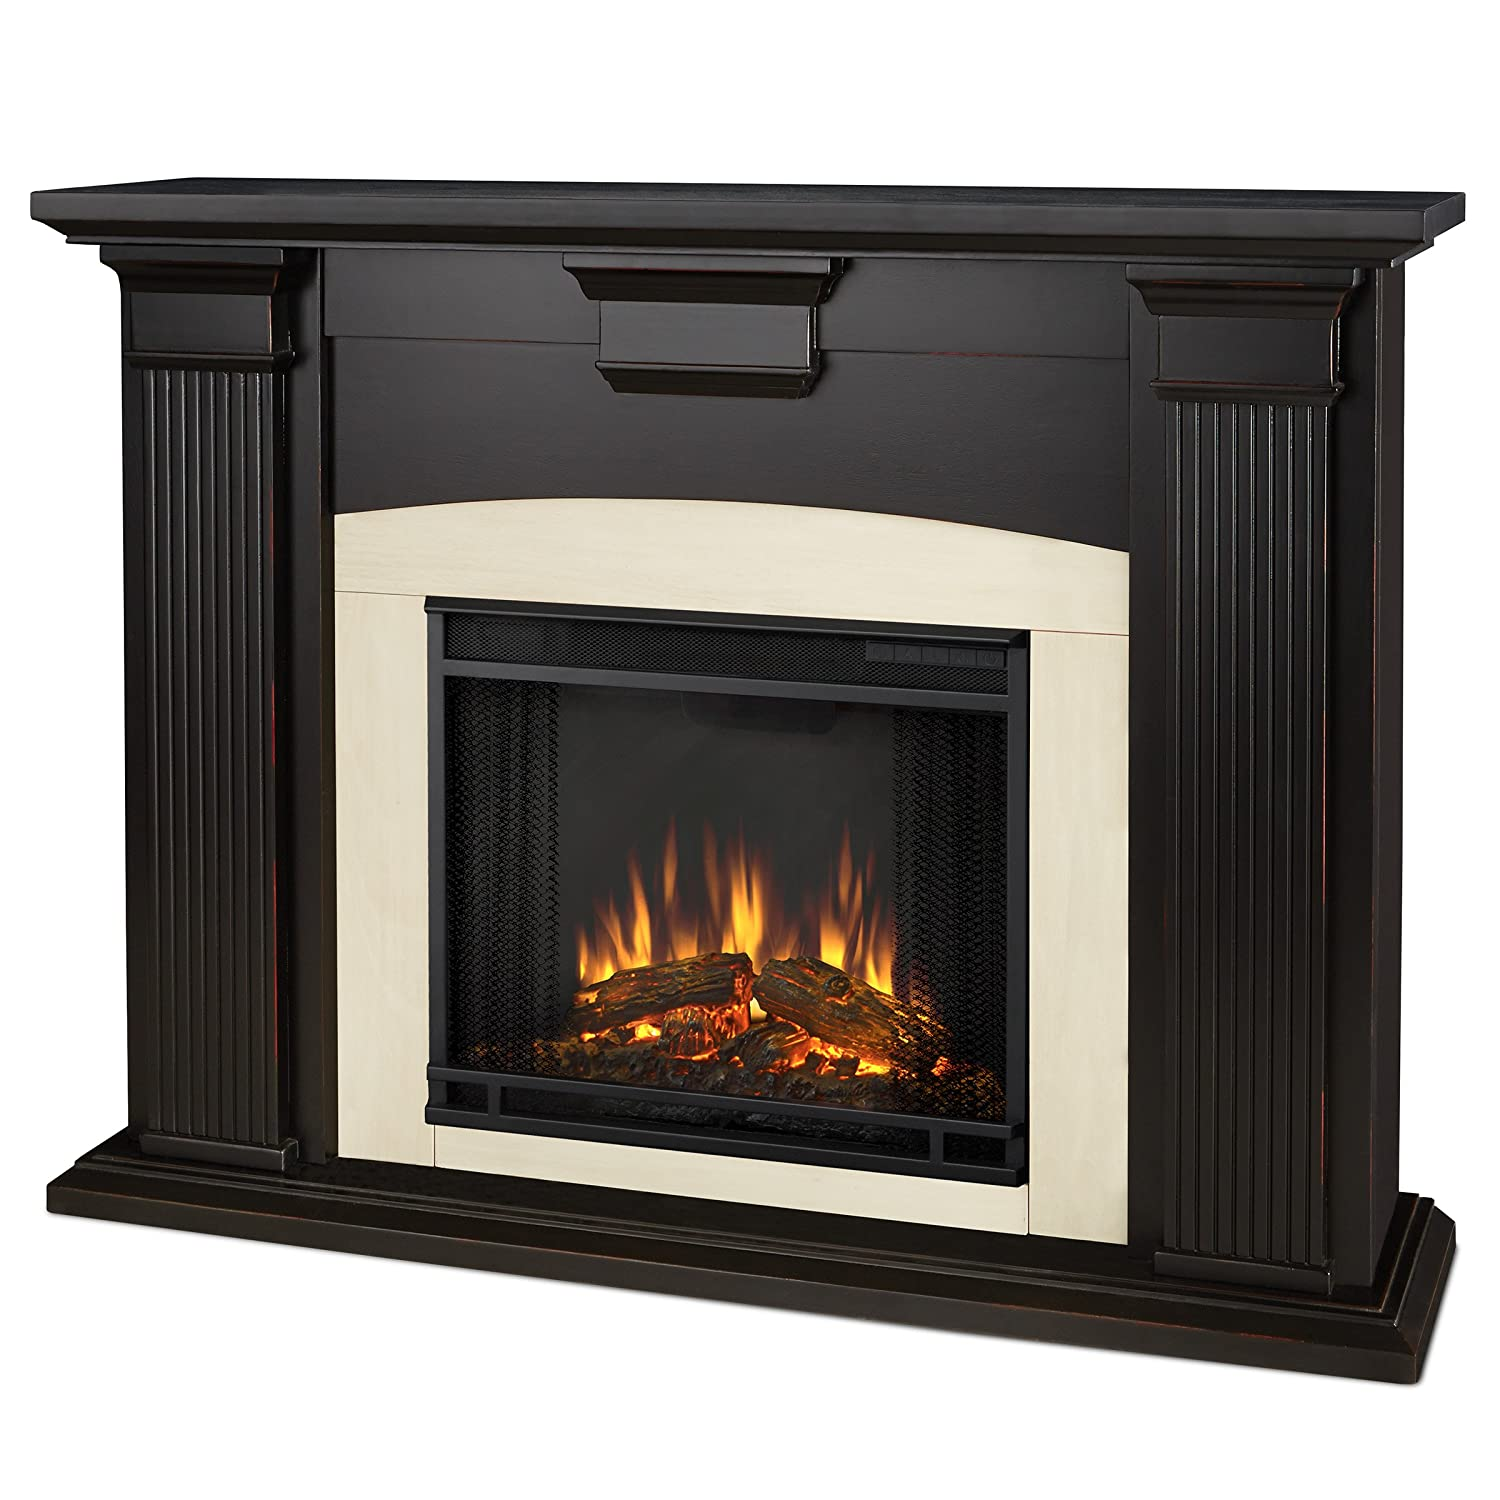 Amazon.com: Real Flame 7920E Adelaide Electric Fireplace, Medium ...